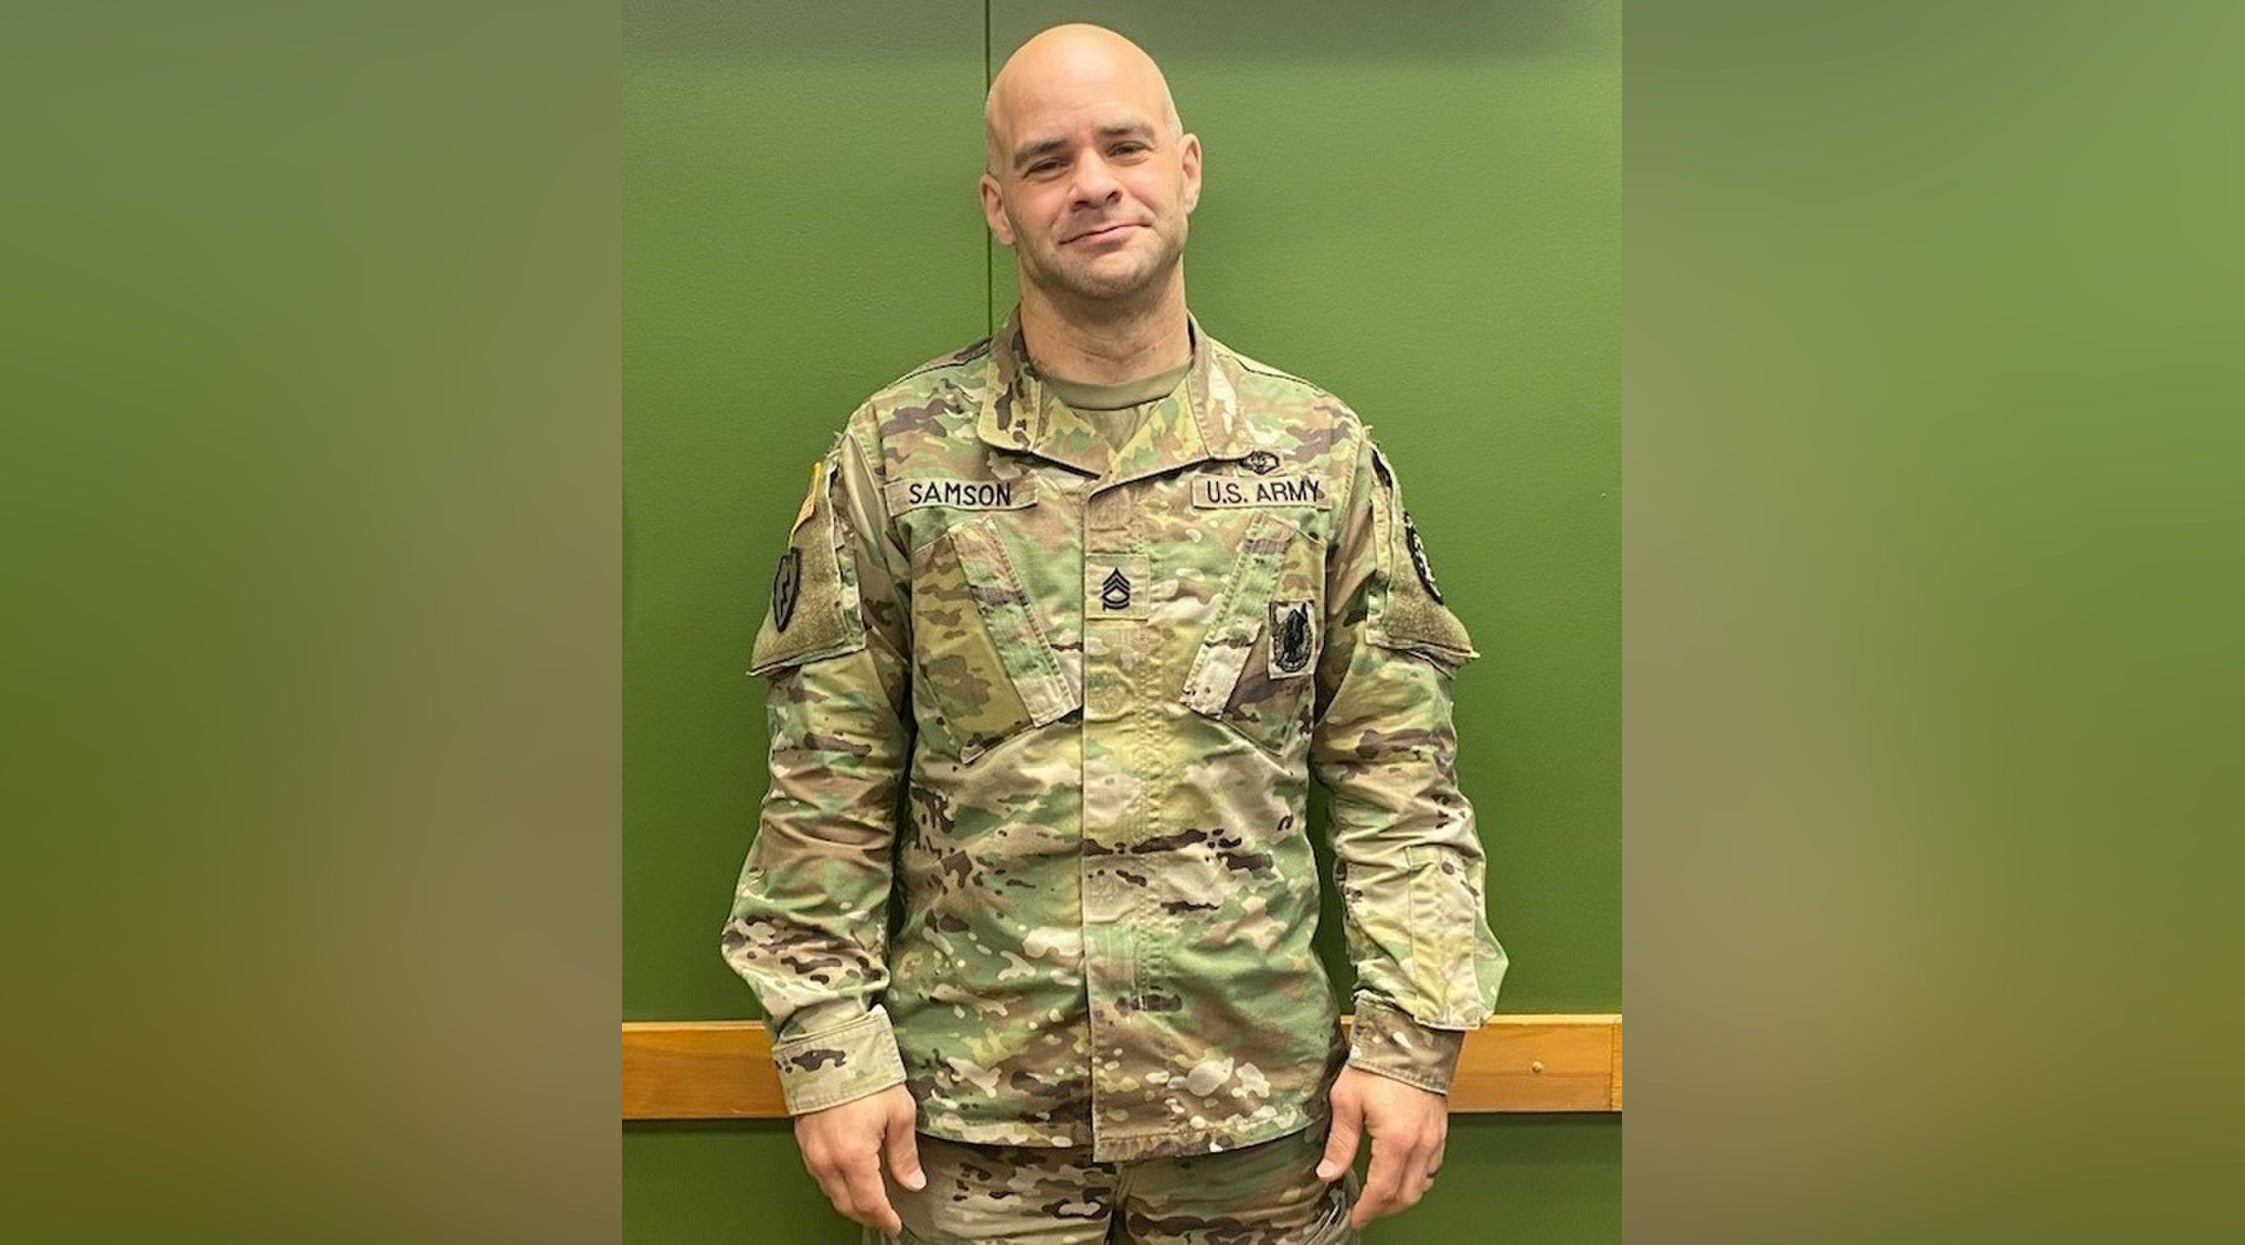 We salute the Army recruiter who saved two people in Alaska this year